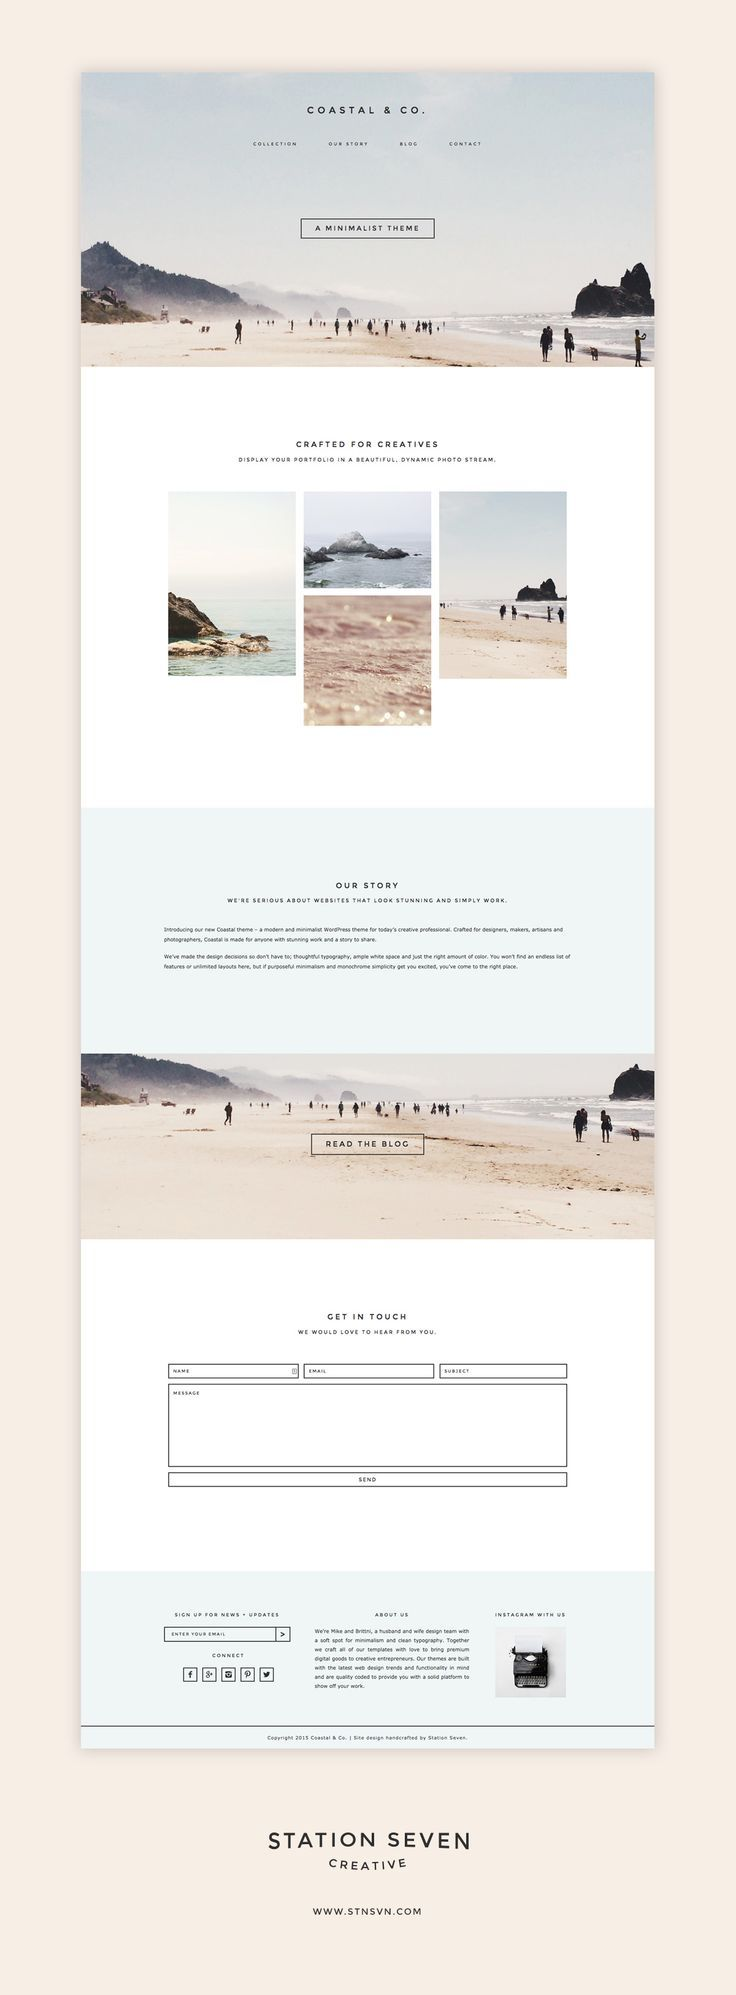 ideas about page design layout layout design say hello to the coastal wordpress theme a mini st design coupled ecommerce support and